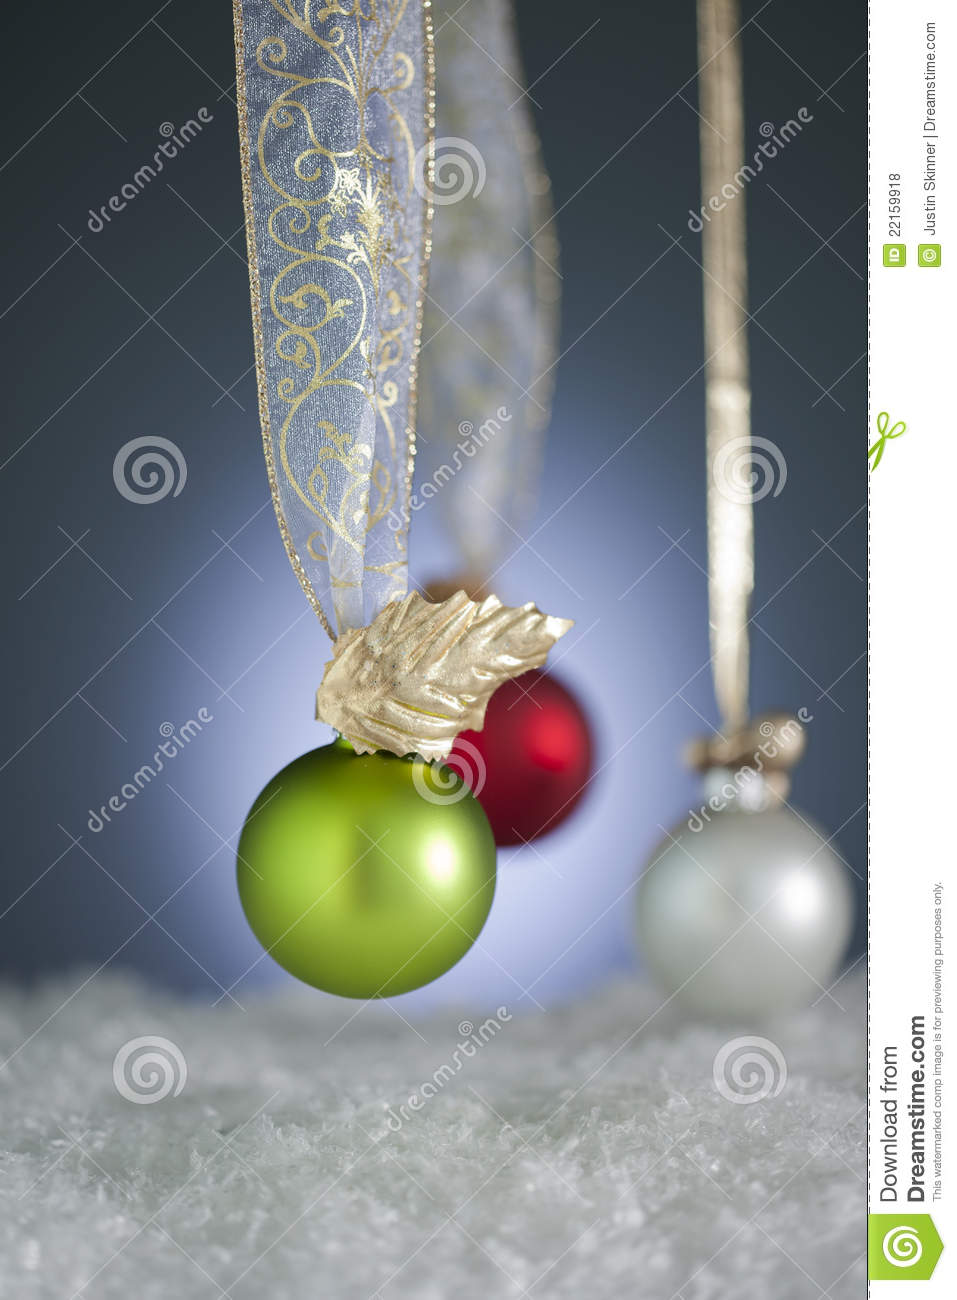 Atypical Christmas Ornaments Royalty Free Stock Photos